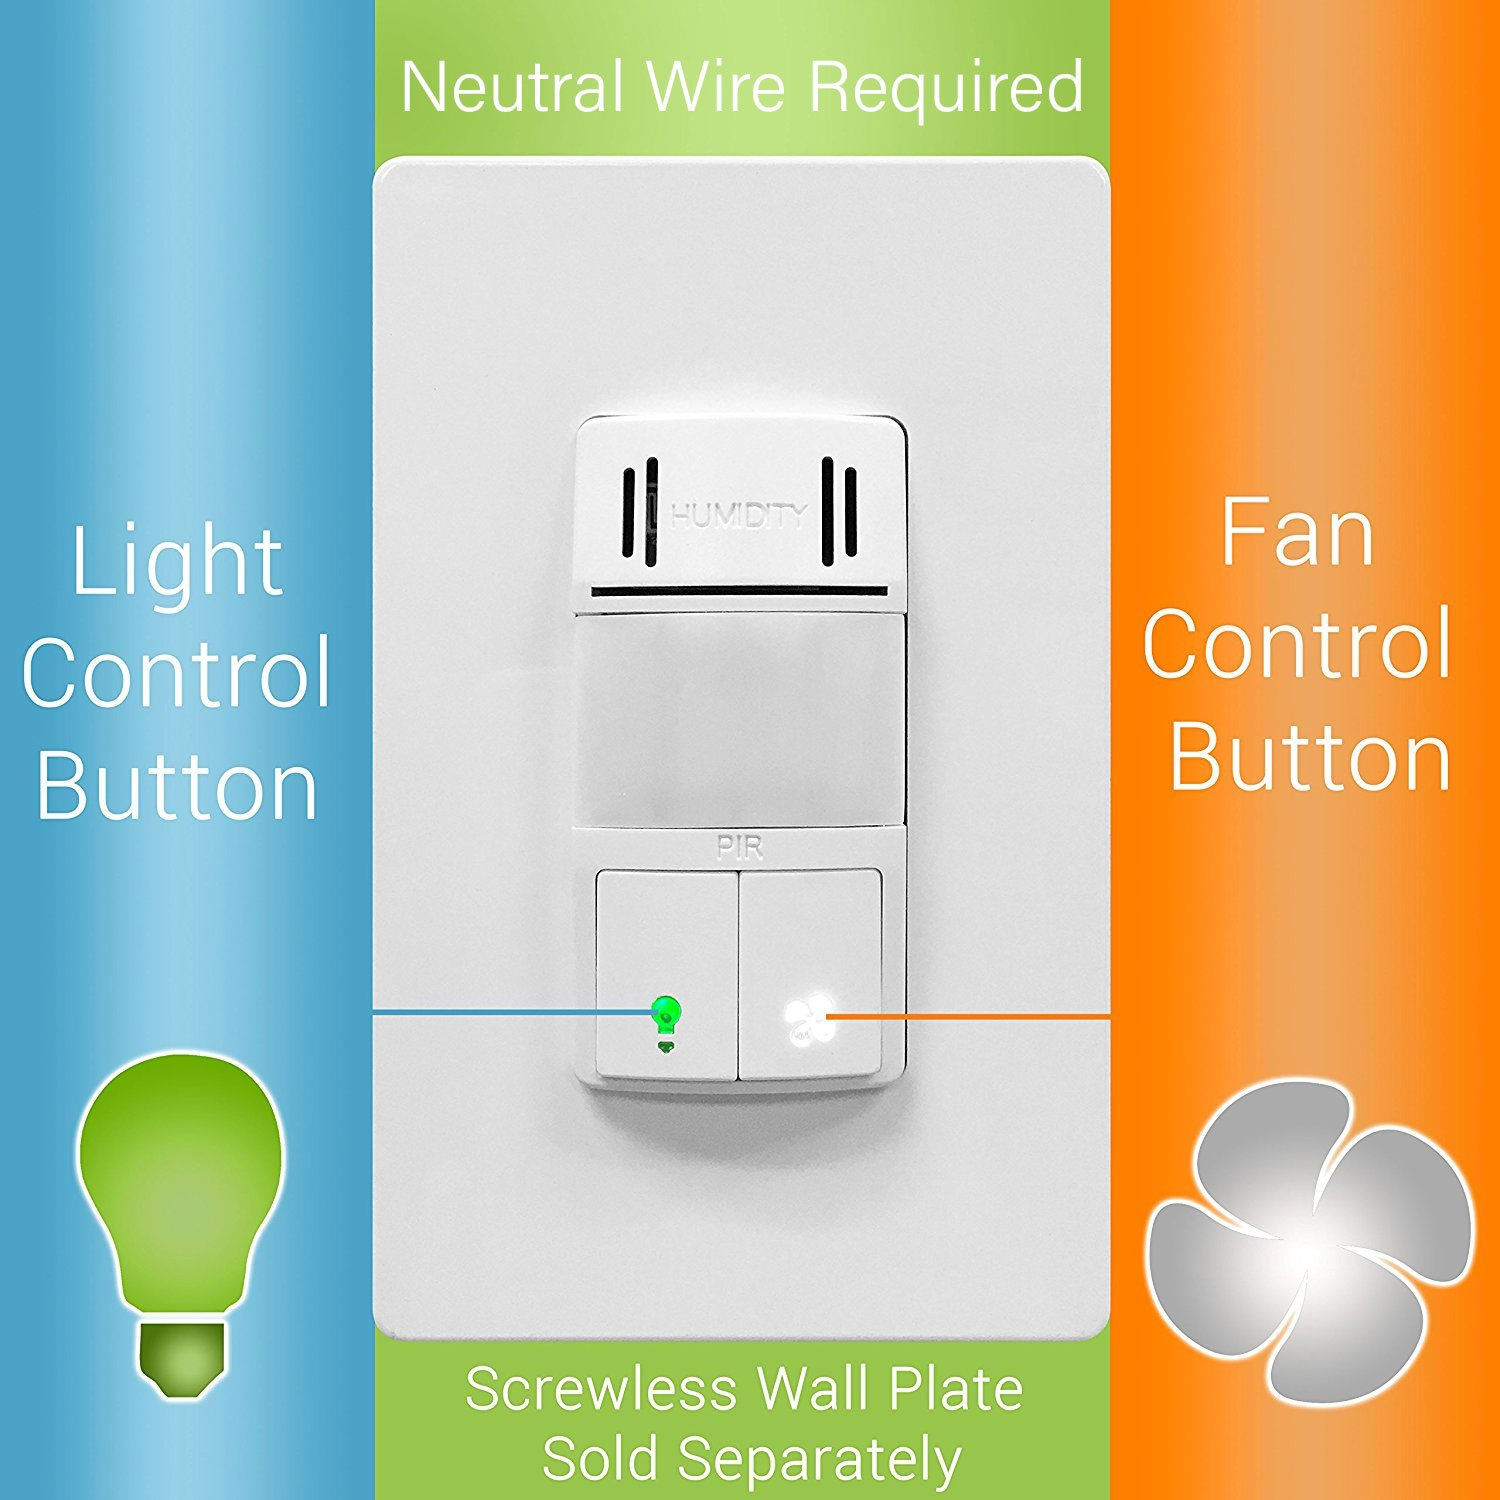 Topgreener Tdhos5 2pcs Humidity Sensor Switch Dual Tech And Neutral Wires That Have Been Switched As A Reference The American Pir Motion For Separate Fan Light Control Wire Required White